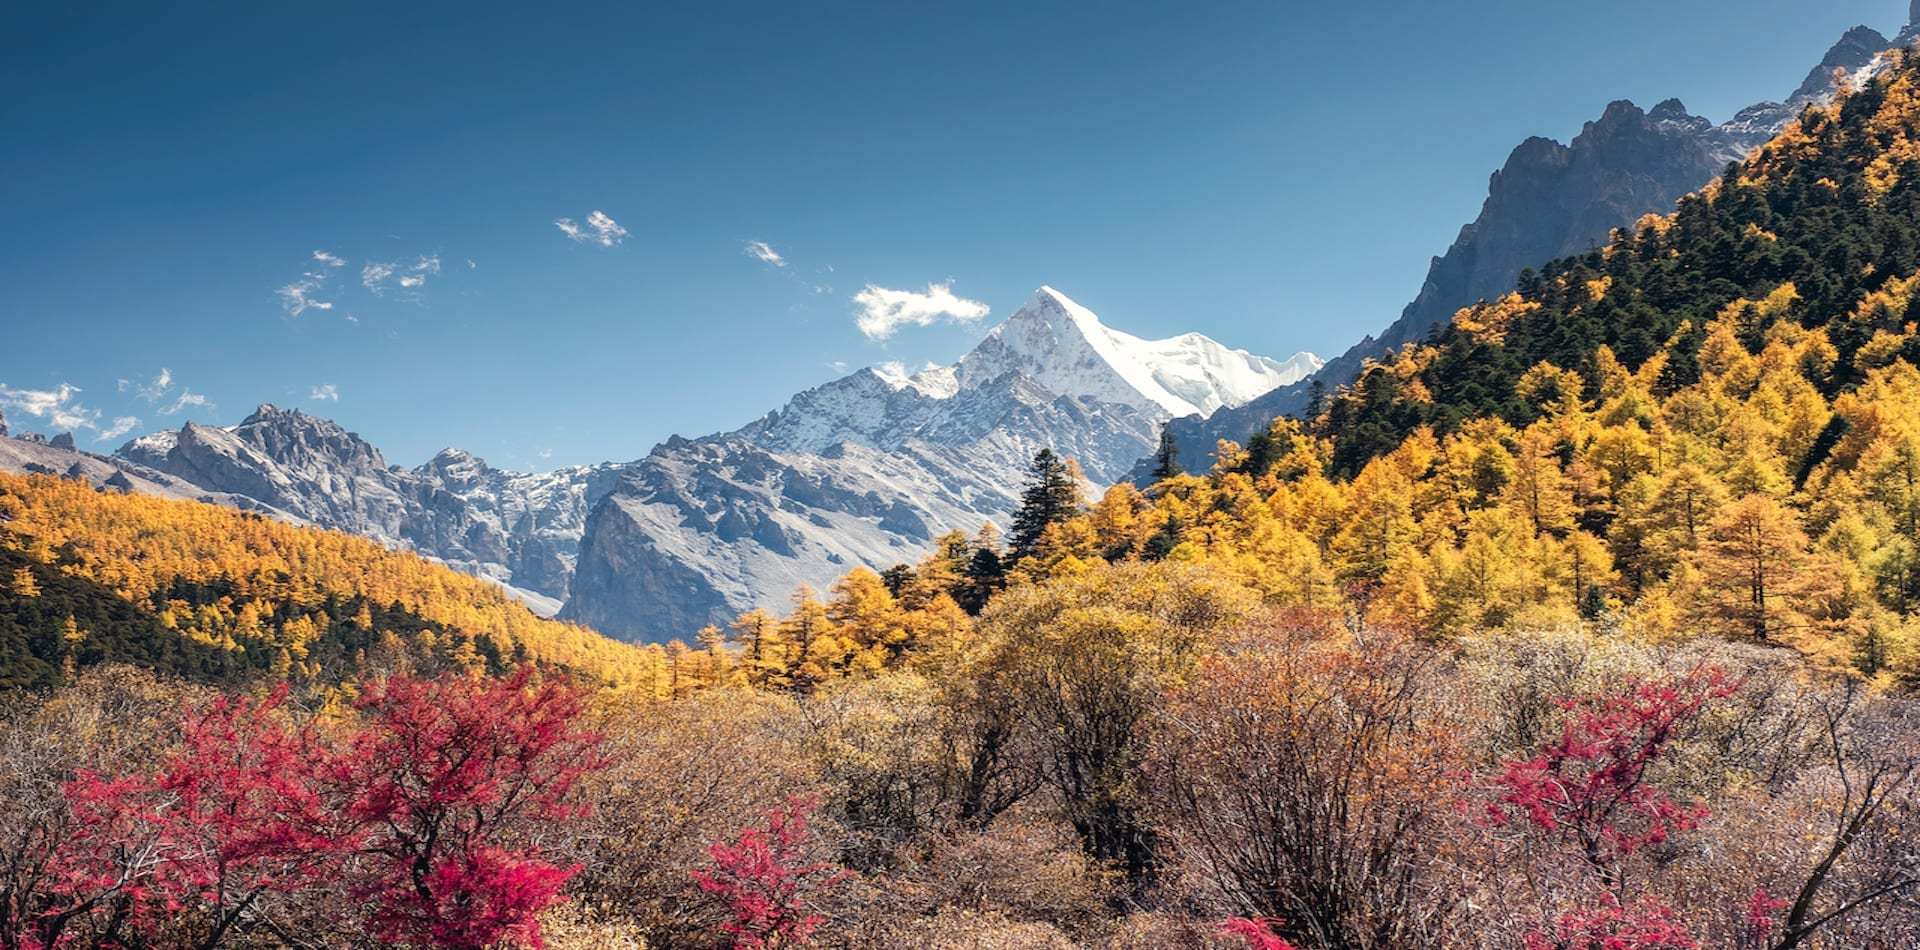 vibrant coloured forests with snow capped mountains in the background